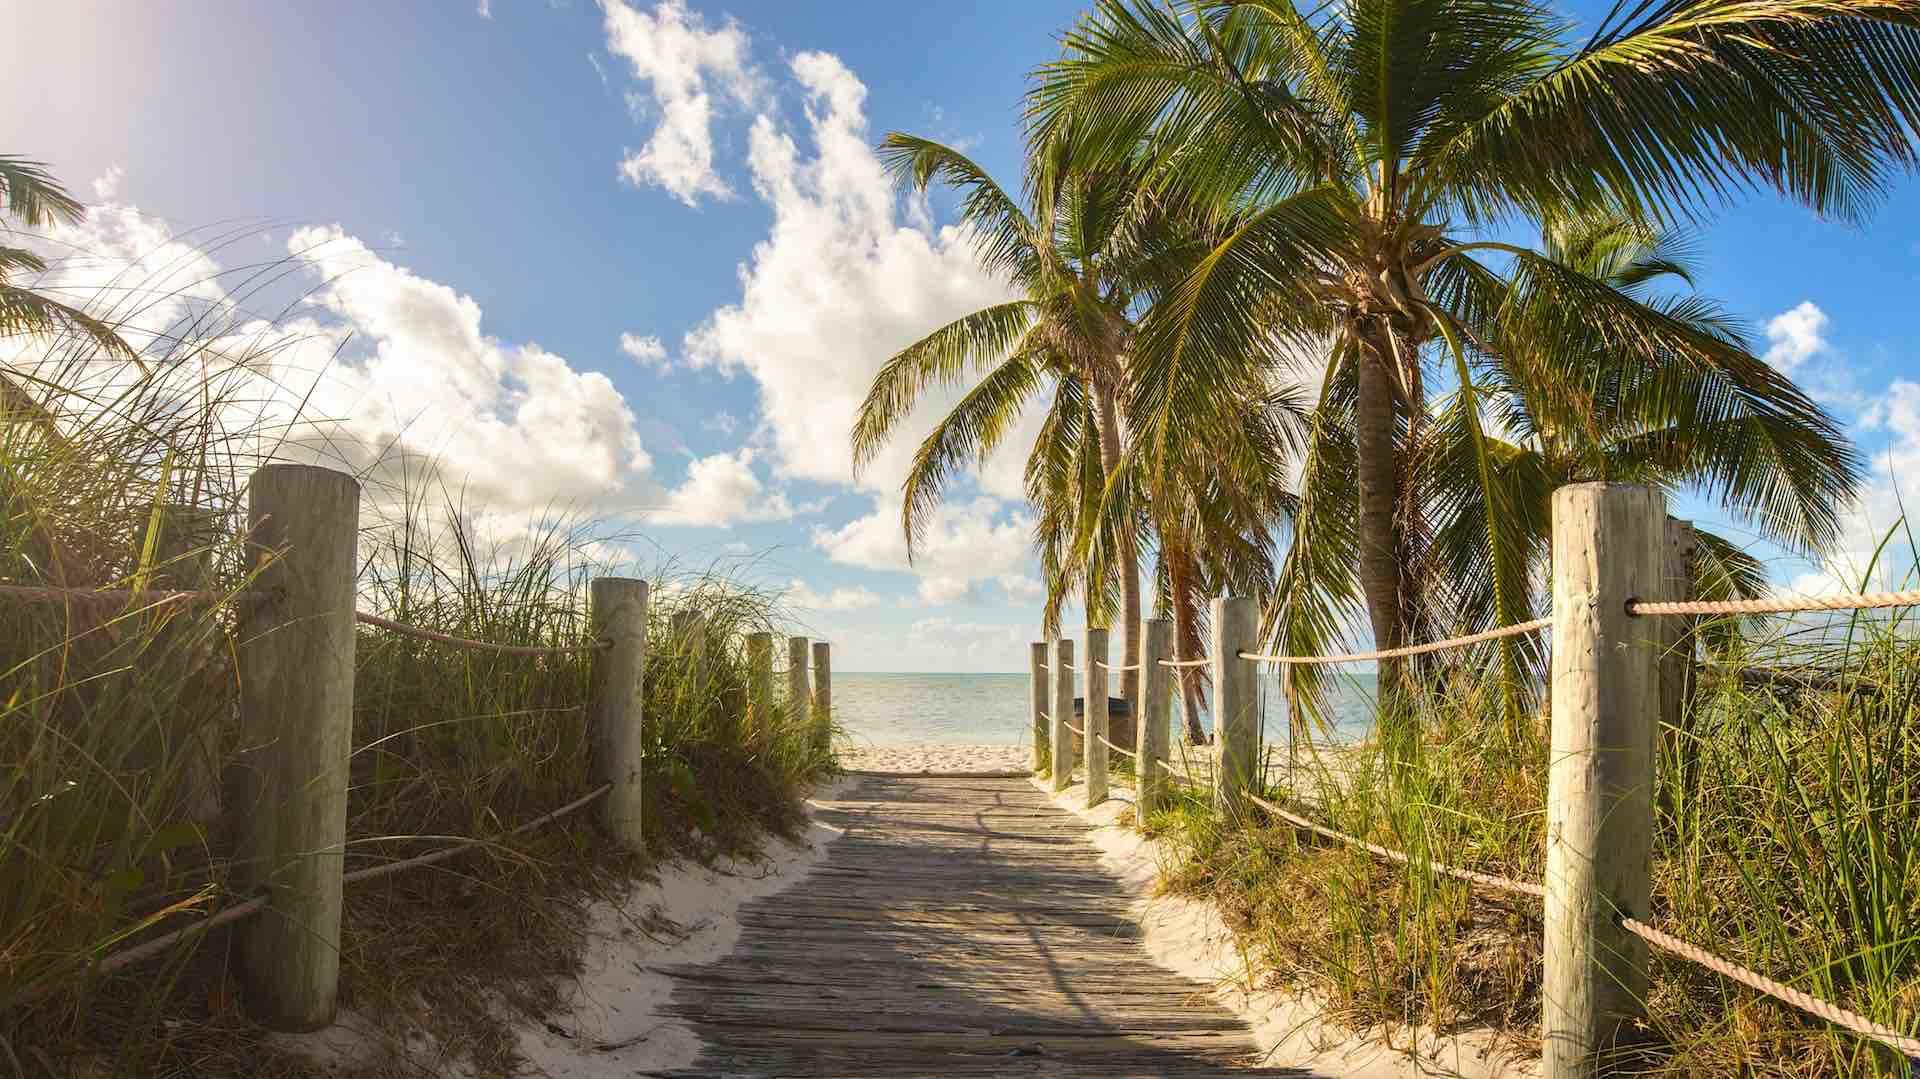 Smathers Beach is located right around the corner from the condo...